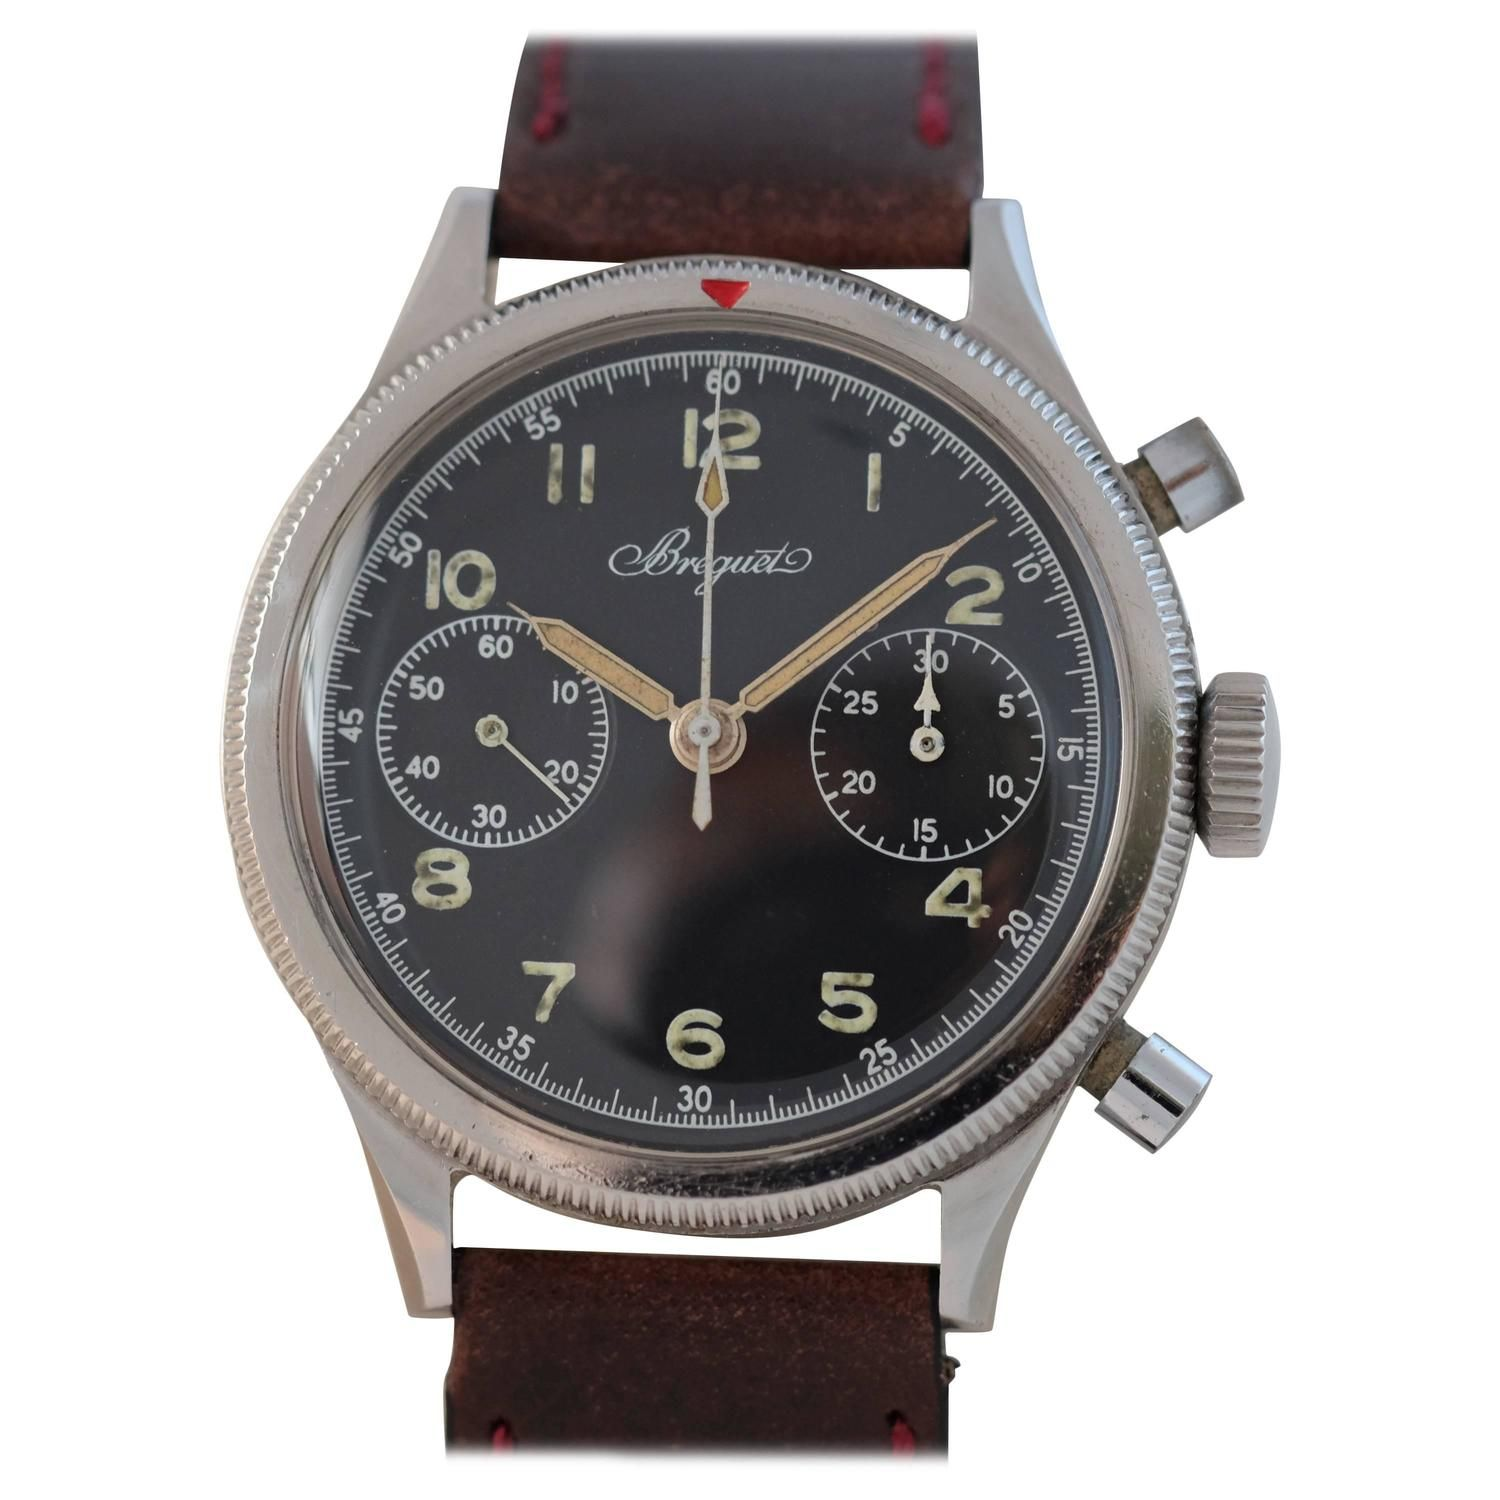 Breguet Stainless Steel Type 20 Chronograph French Military Wristwatch 1954 1stdibs Com Stainless Steel Types Wrist Watch Vintage Watches